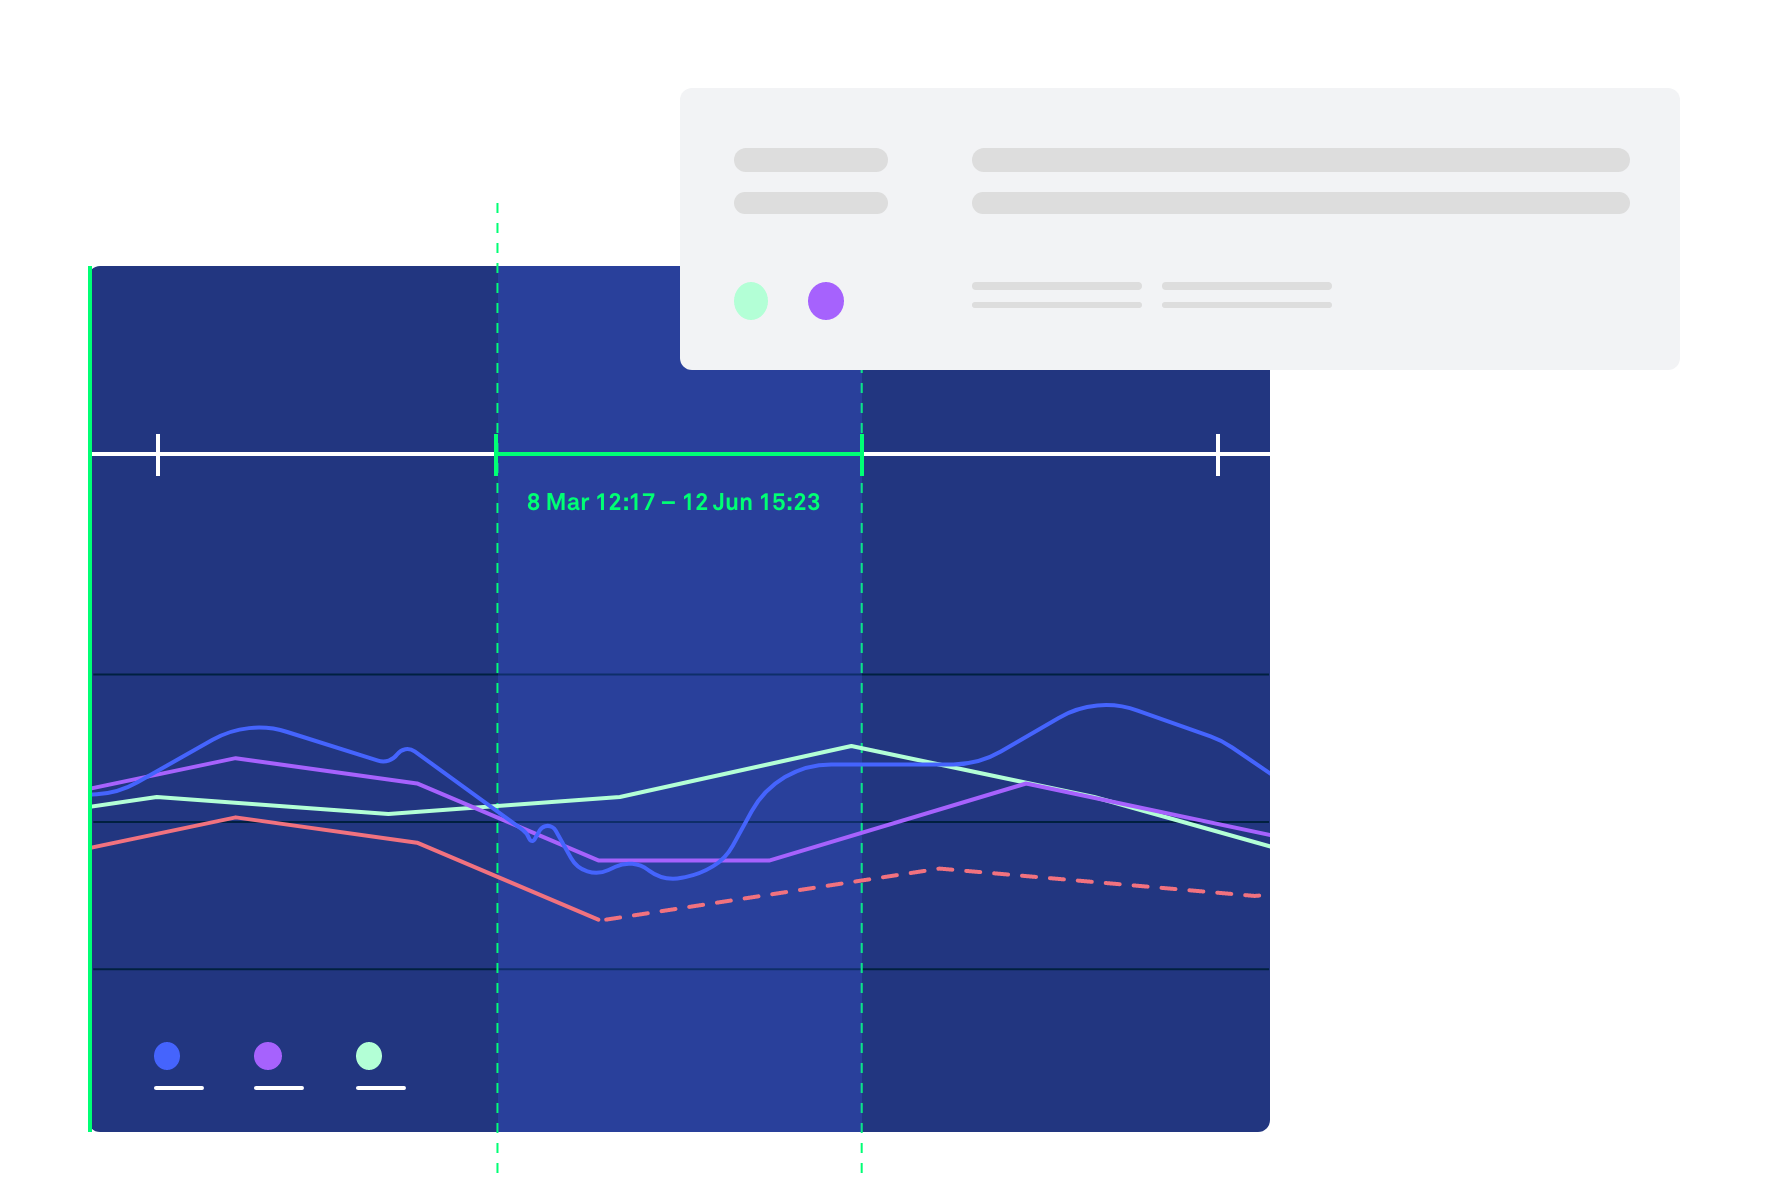 Illustrating how you can use Clarify's time selector to get more details about your data